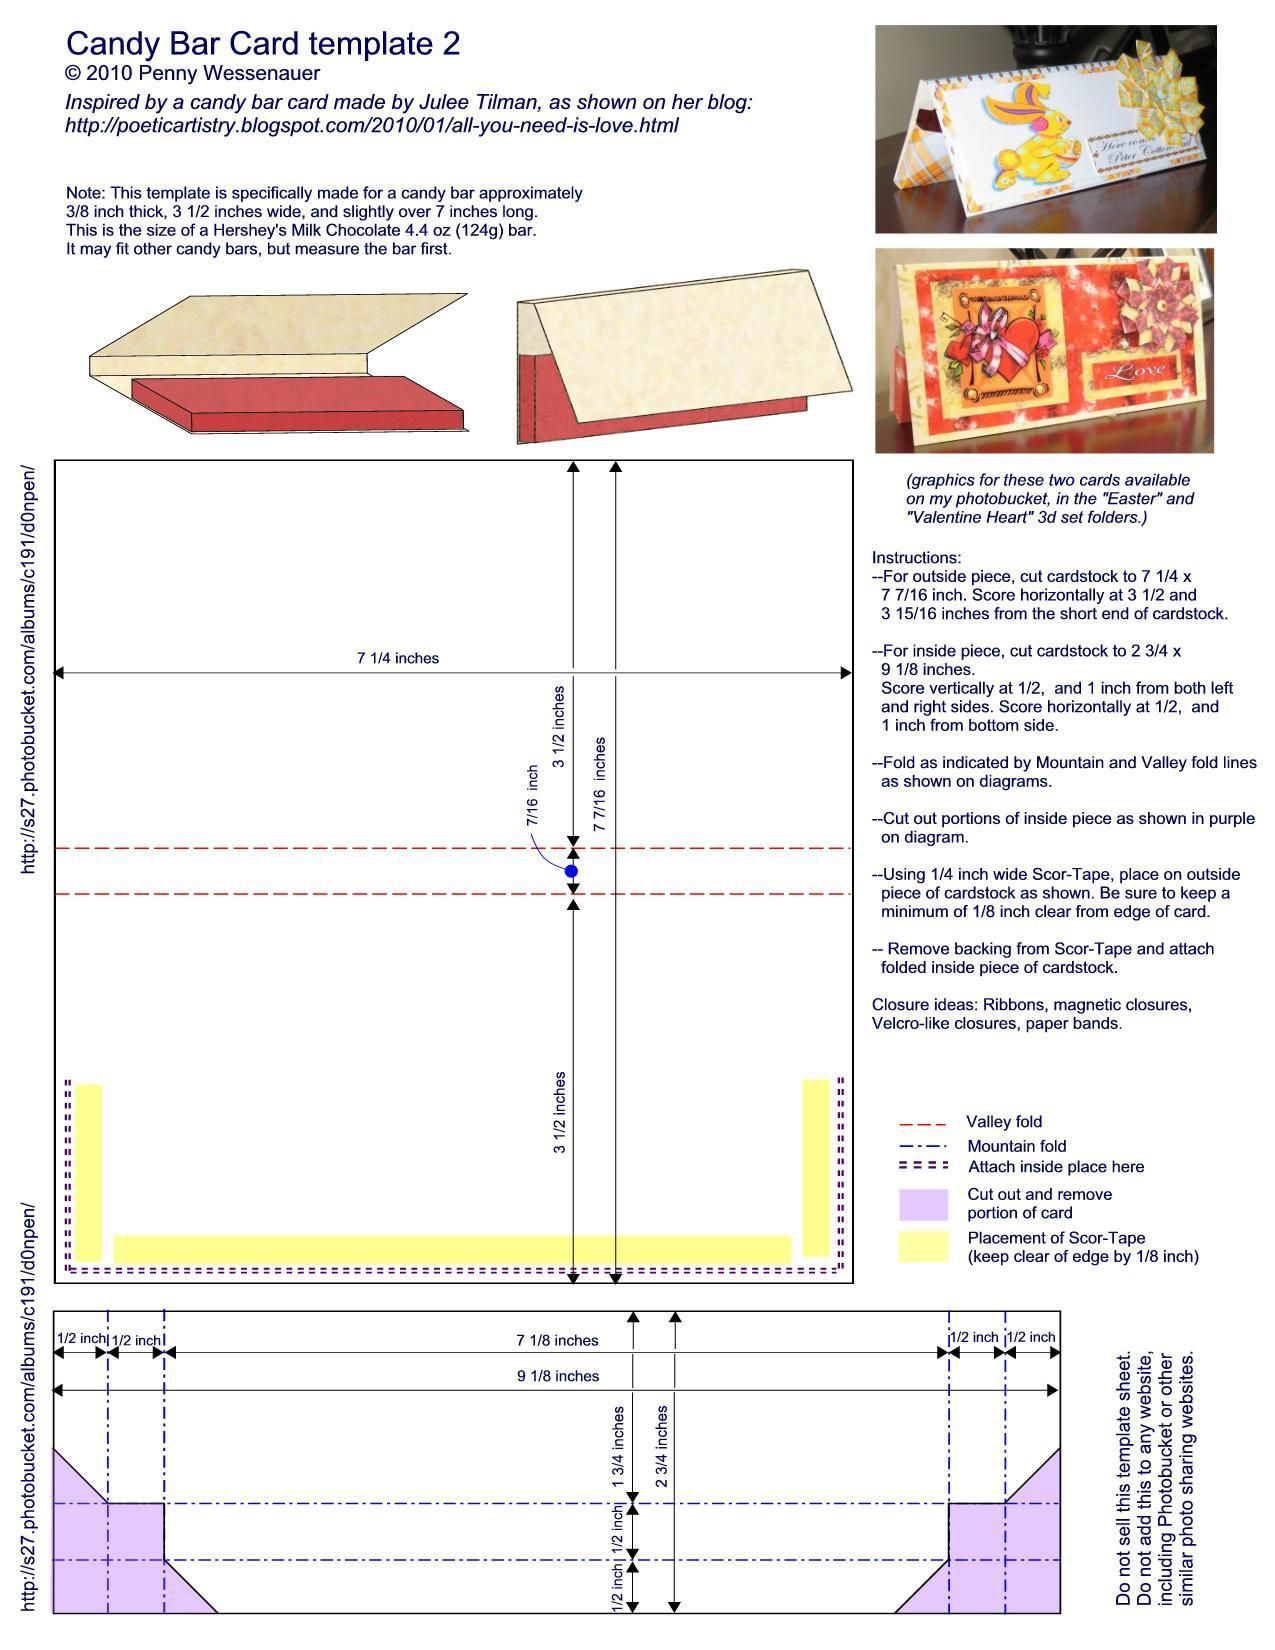 template for a candy bar card fits a hershey bar plus many